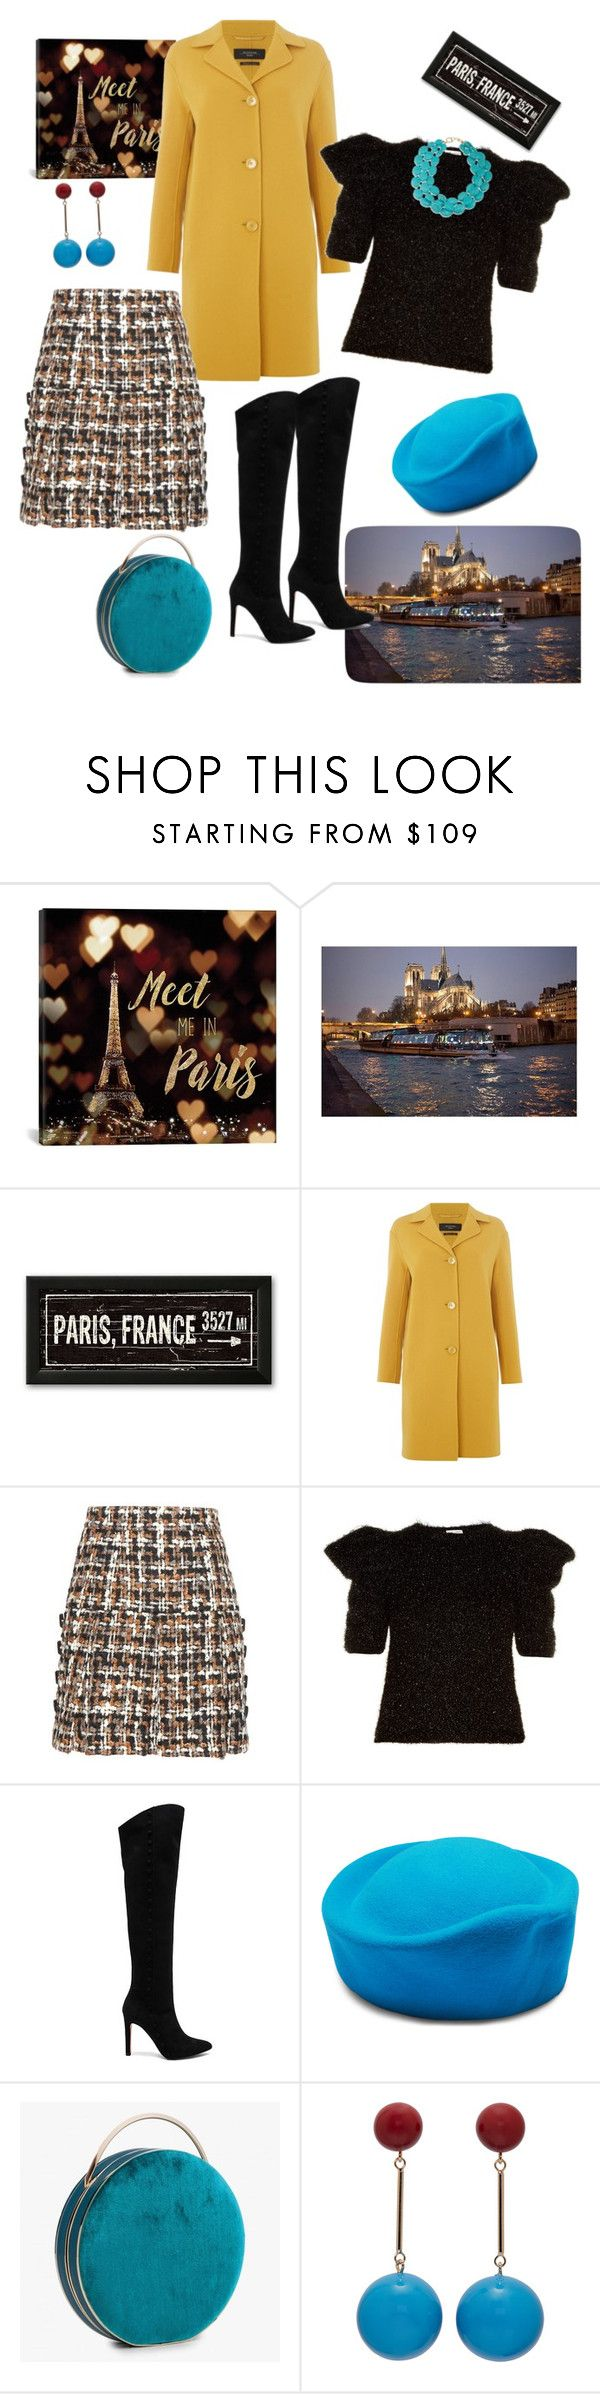 """Winter in Paris🗼🖼"" by parnett ❤ liked on Polyvore featuring iCanvas, MaxMara, Dolce&Gabbana, Yves Saint Laurent, Pura López, J.W. Anderson and Ralph Lauren"